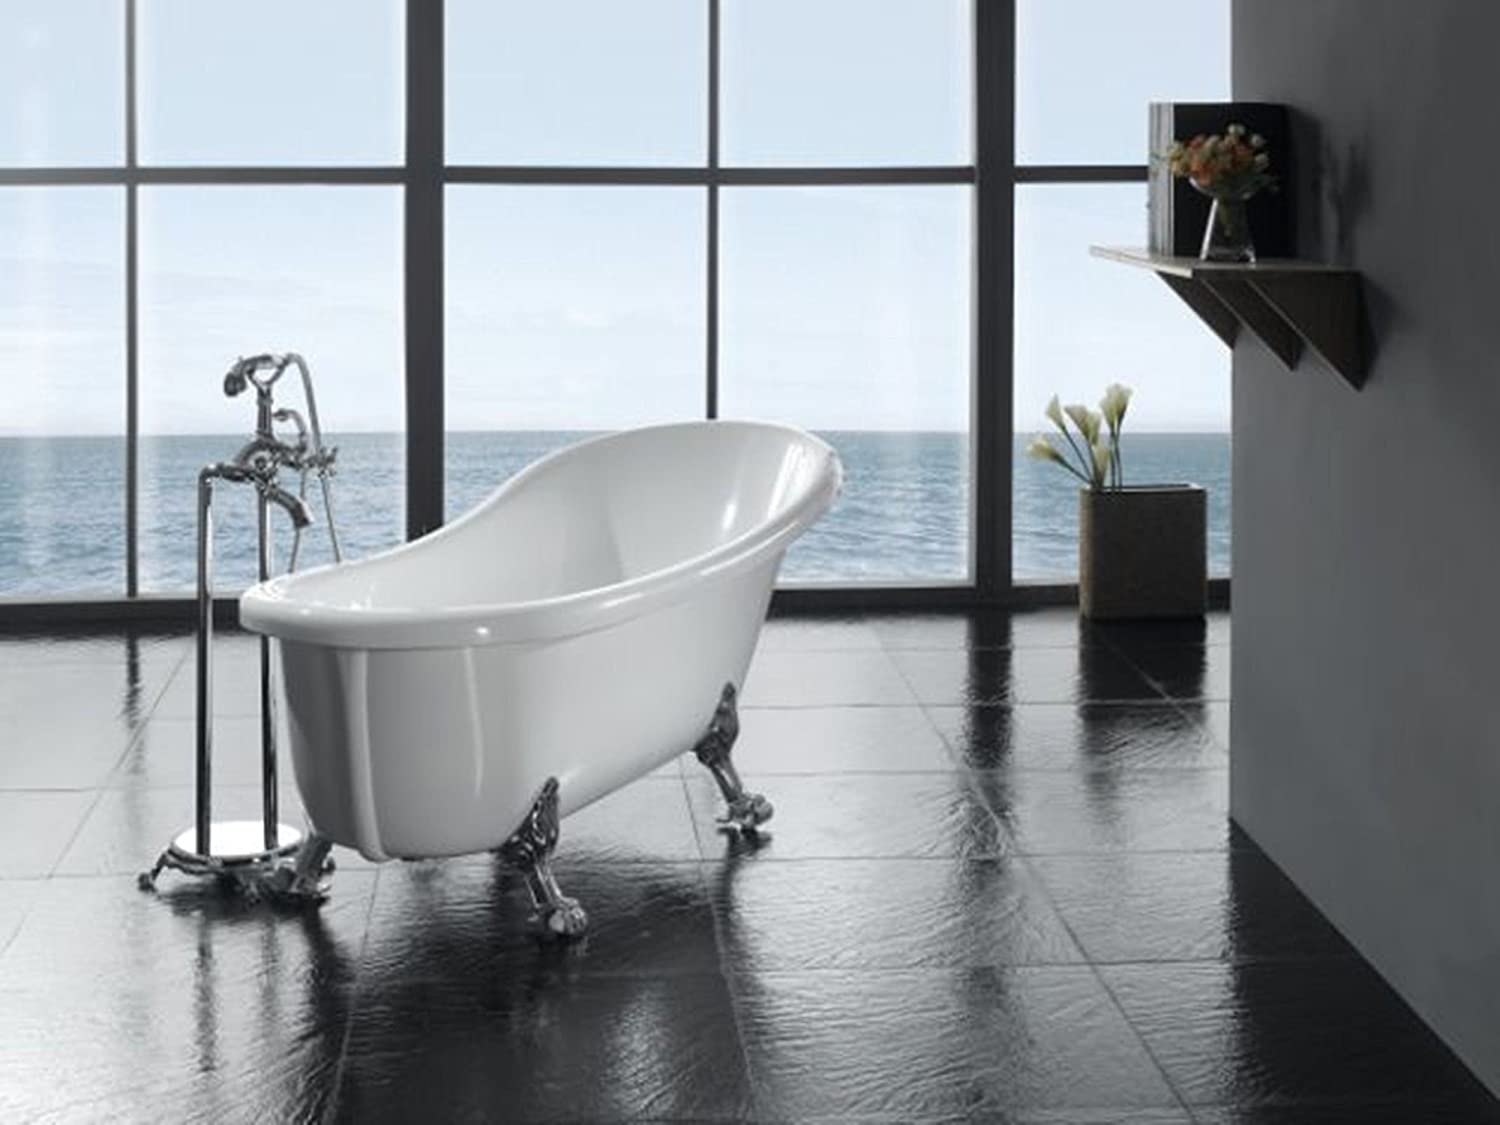 Ove Decors Clawfoot 66-Inch Freestanding Acrylic Bathtub with ...